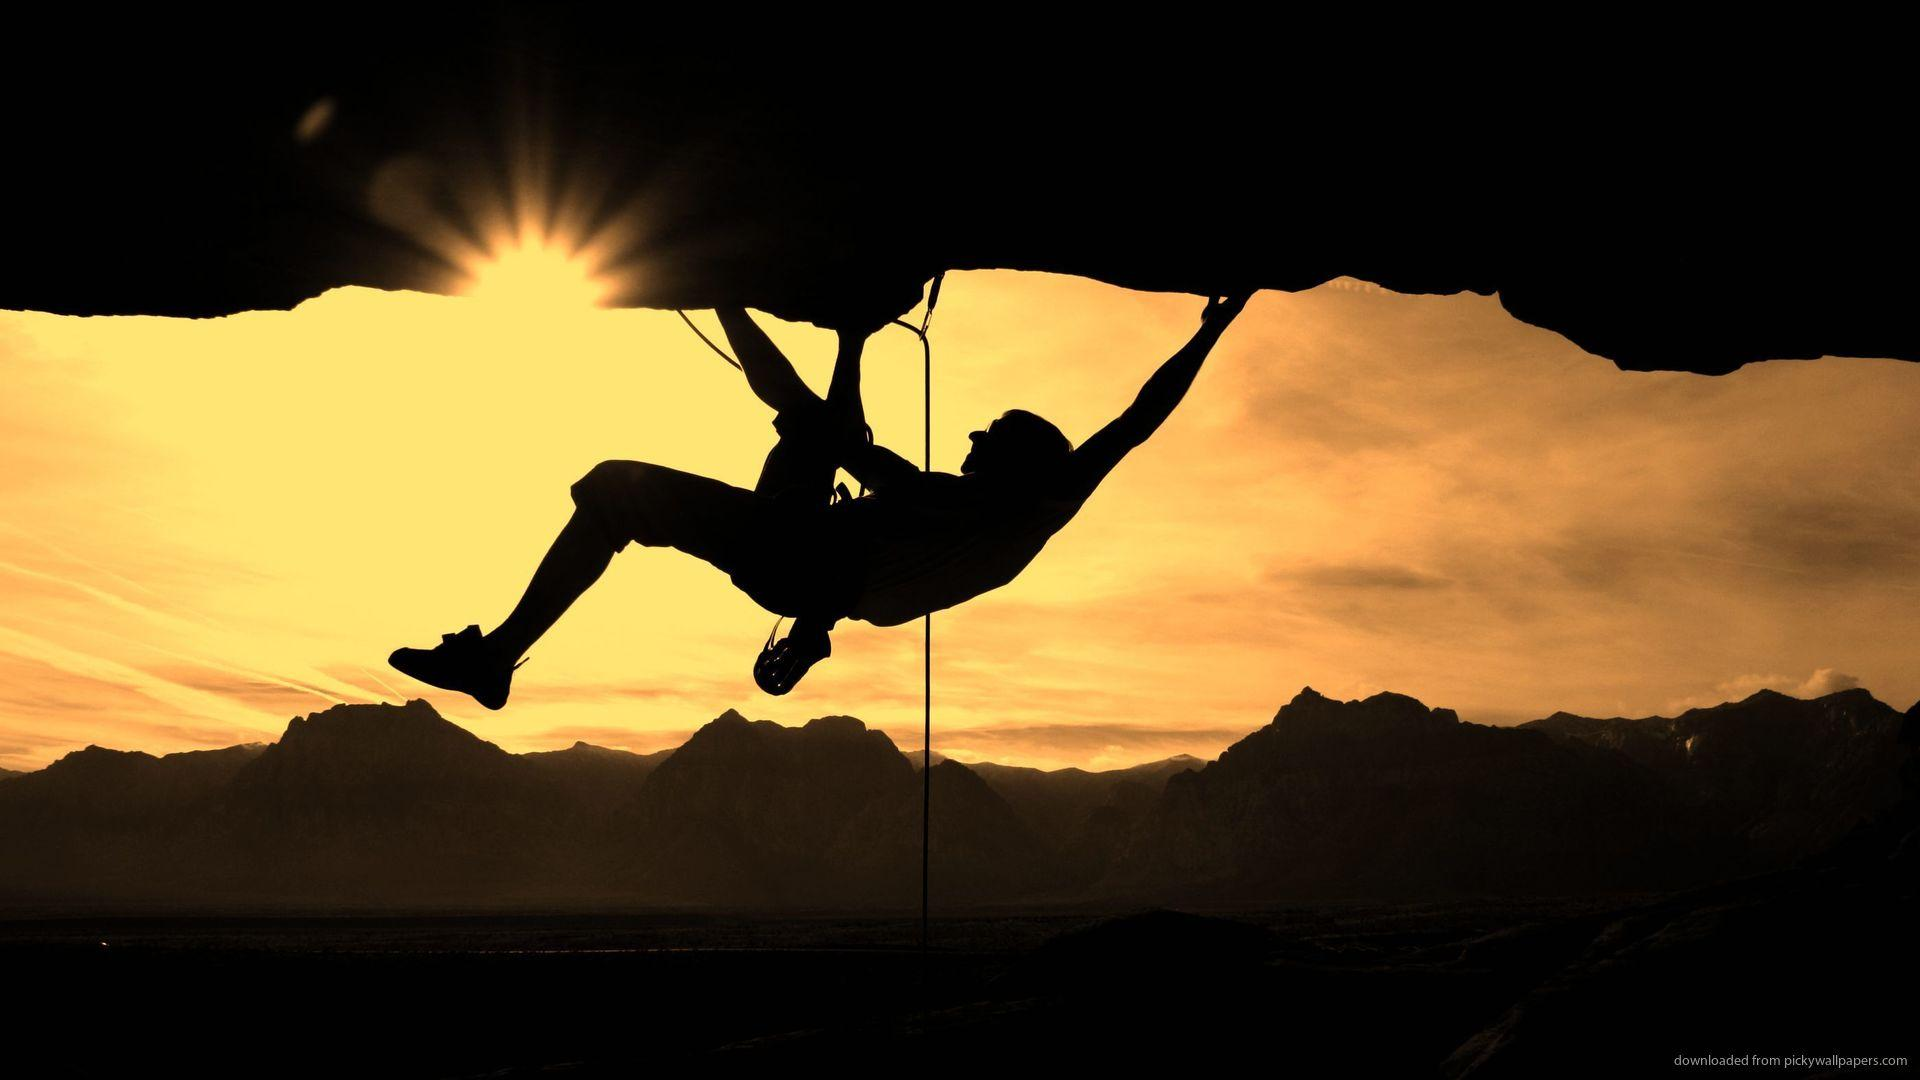 Rock Climbing Wallpapers Image : Sports Wallpapers